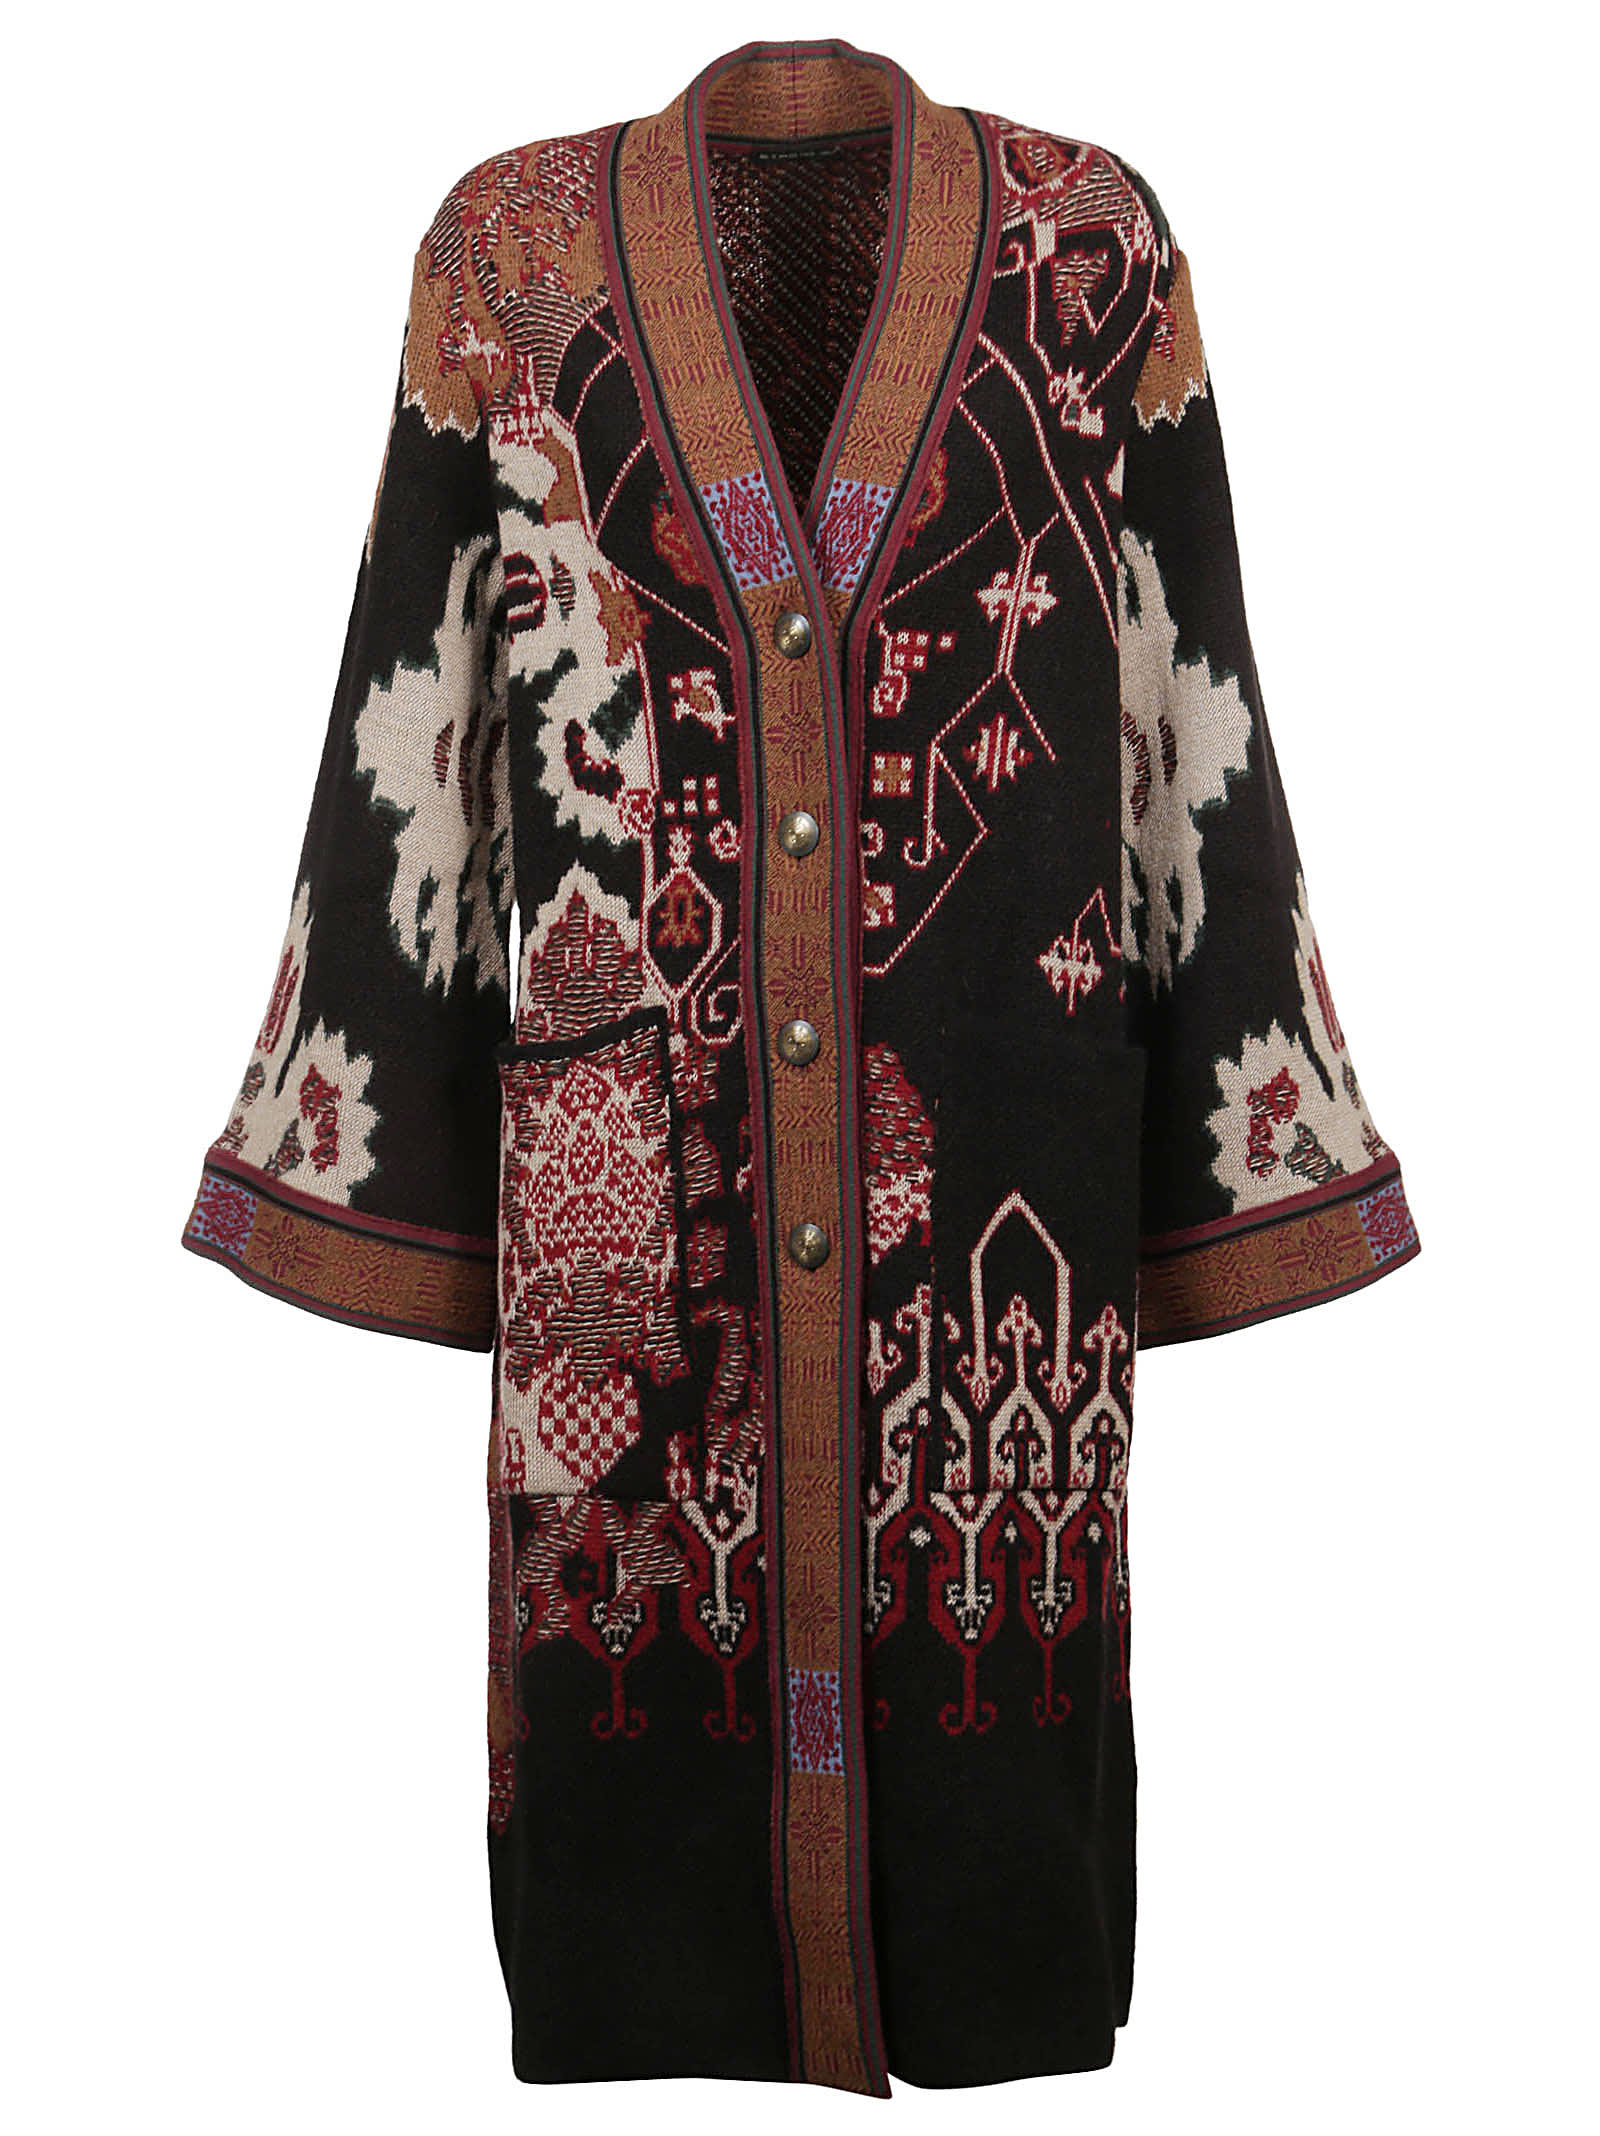 Photo of  Etro Cappotto Cornwall- shop Etro jackets online sales